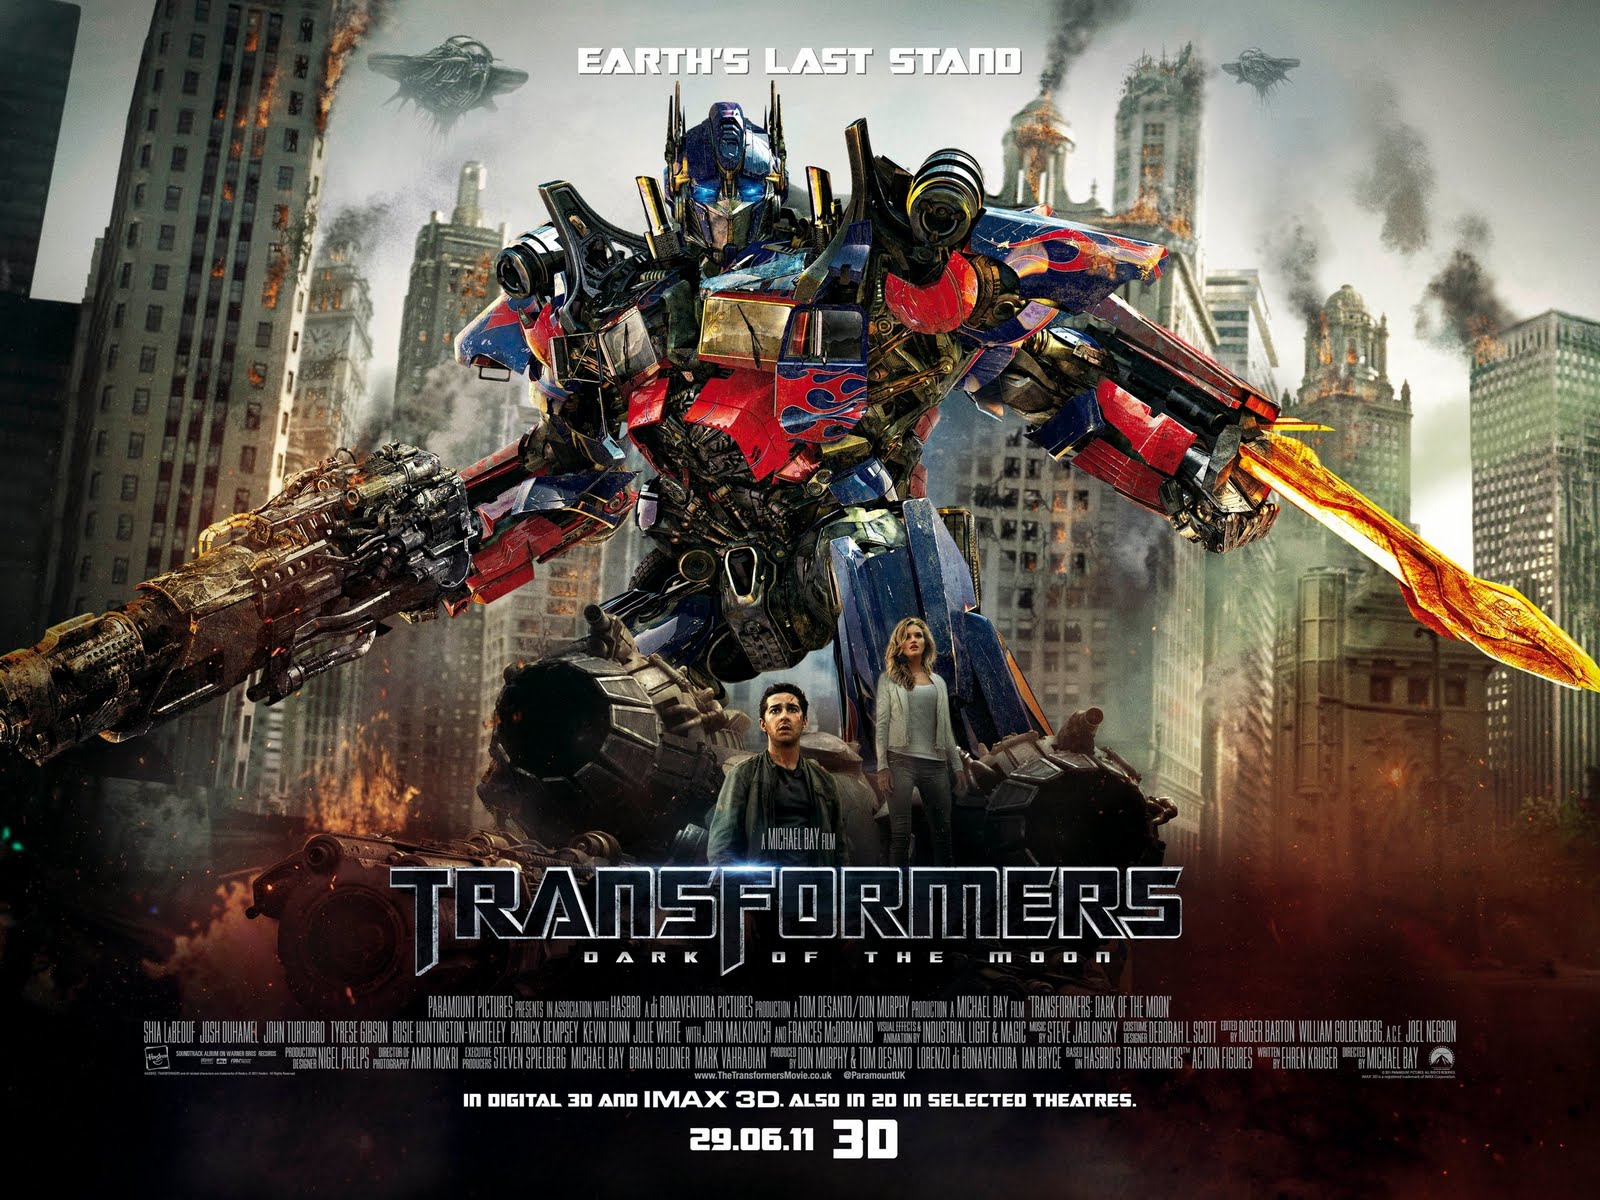 mendelson's memos: review: transformers: dark of the moon (3d) is